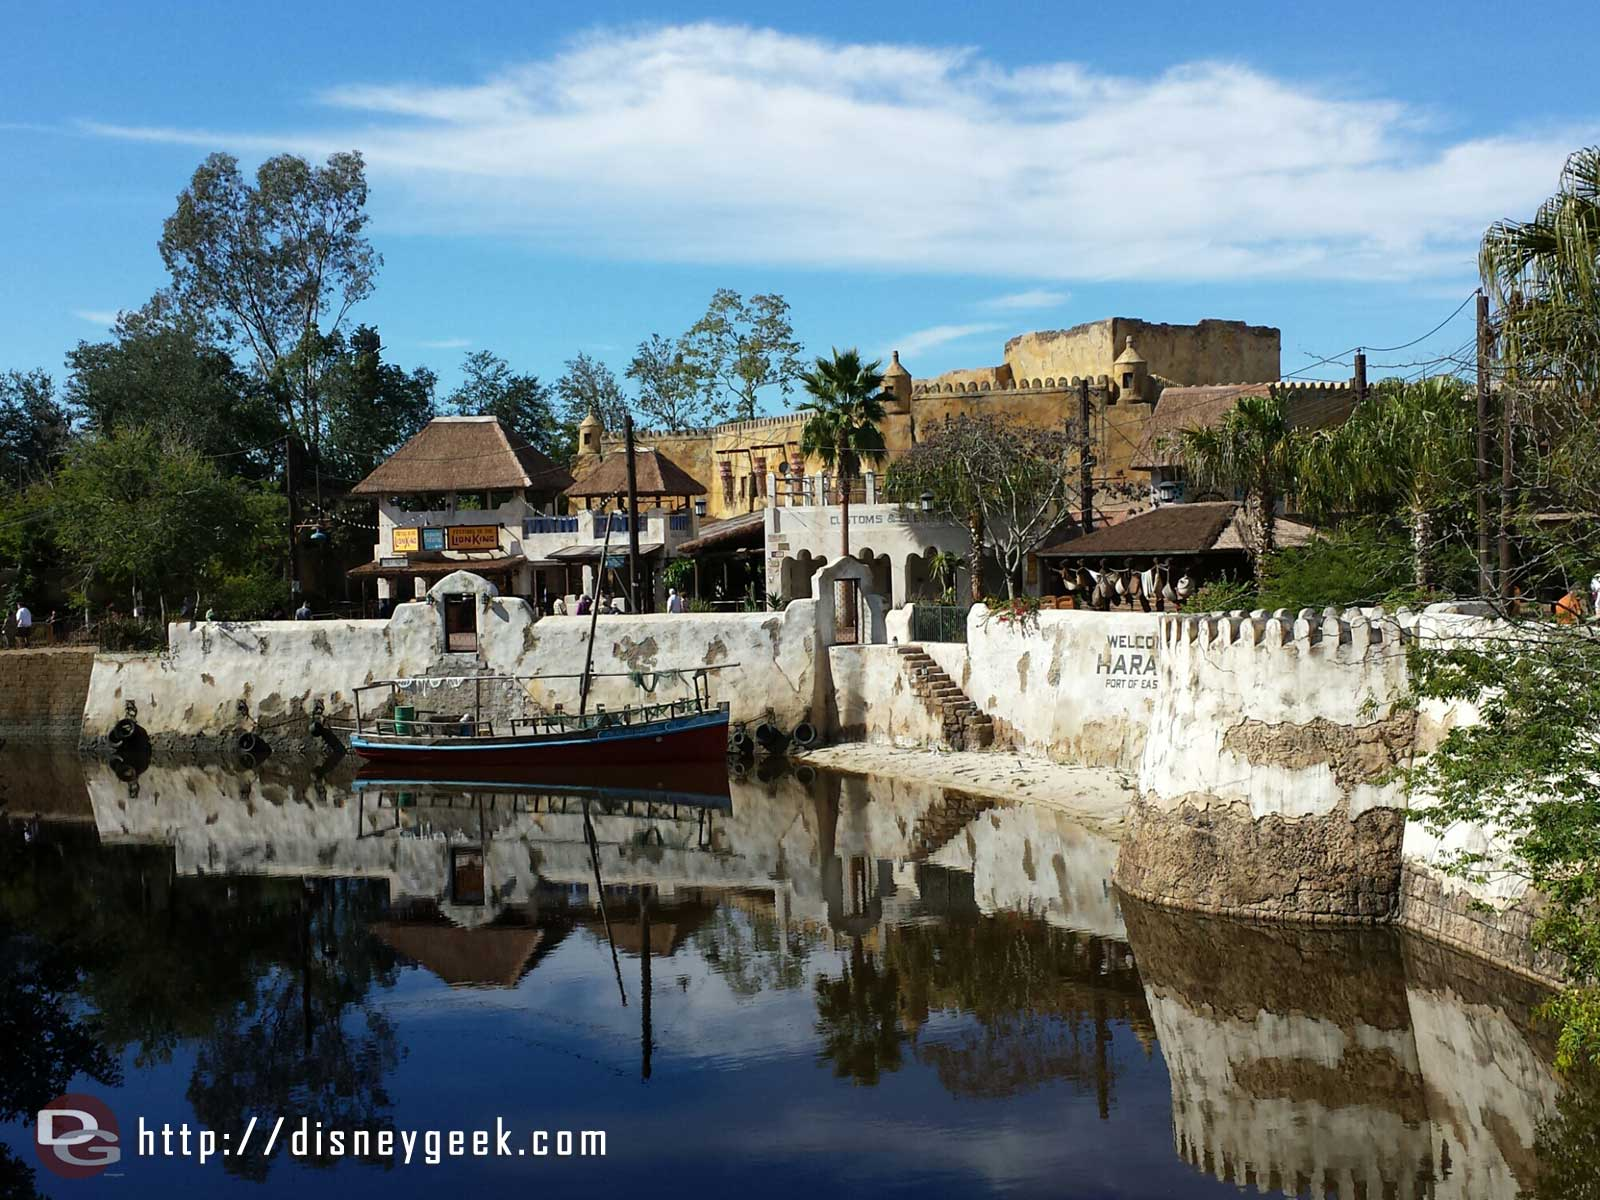 Harambe theatre area from the bridge – Disney's Animal Kingdom #WDW